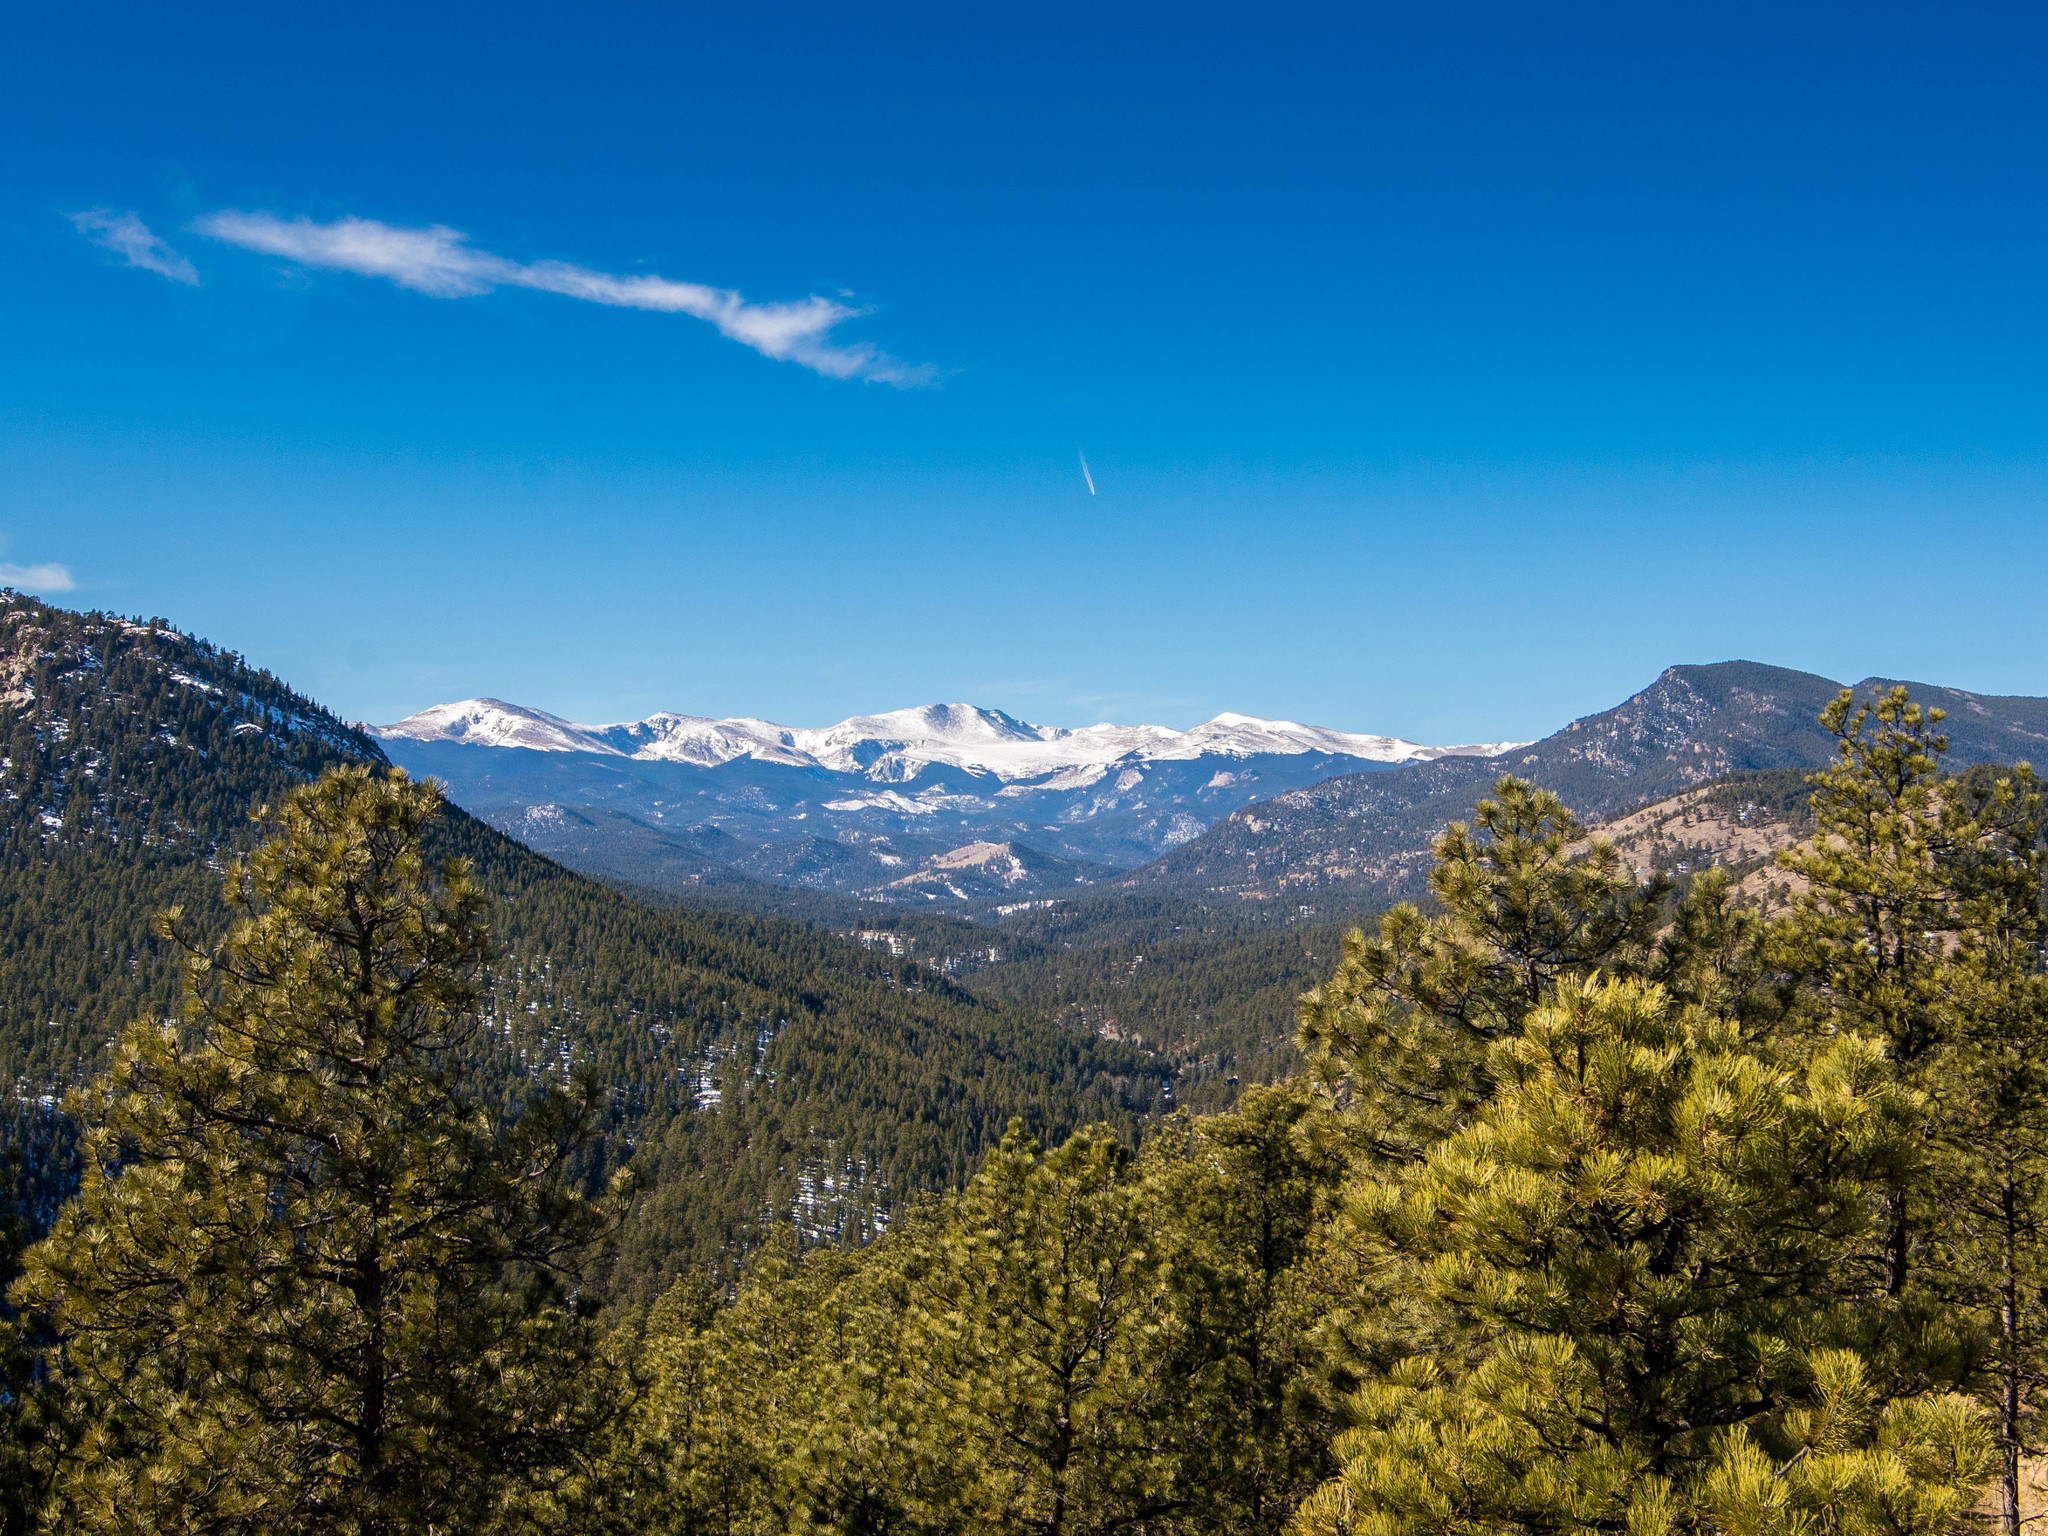 Đất đai vì Bán tại Ready to Build Your Dream Estate TBD Pinecrest Mountain Evergreen, Colorado, 80439 Hoa Kỳ